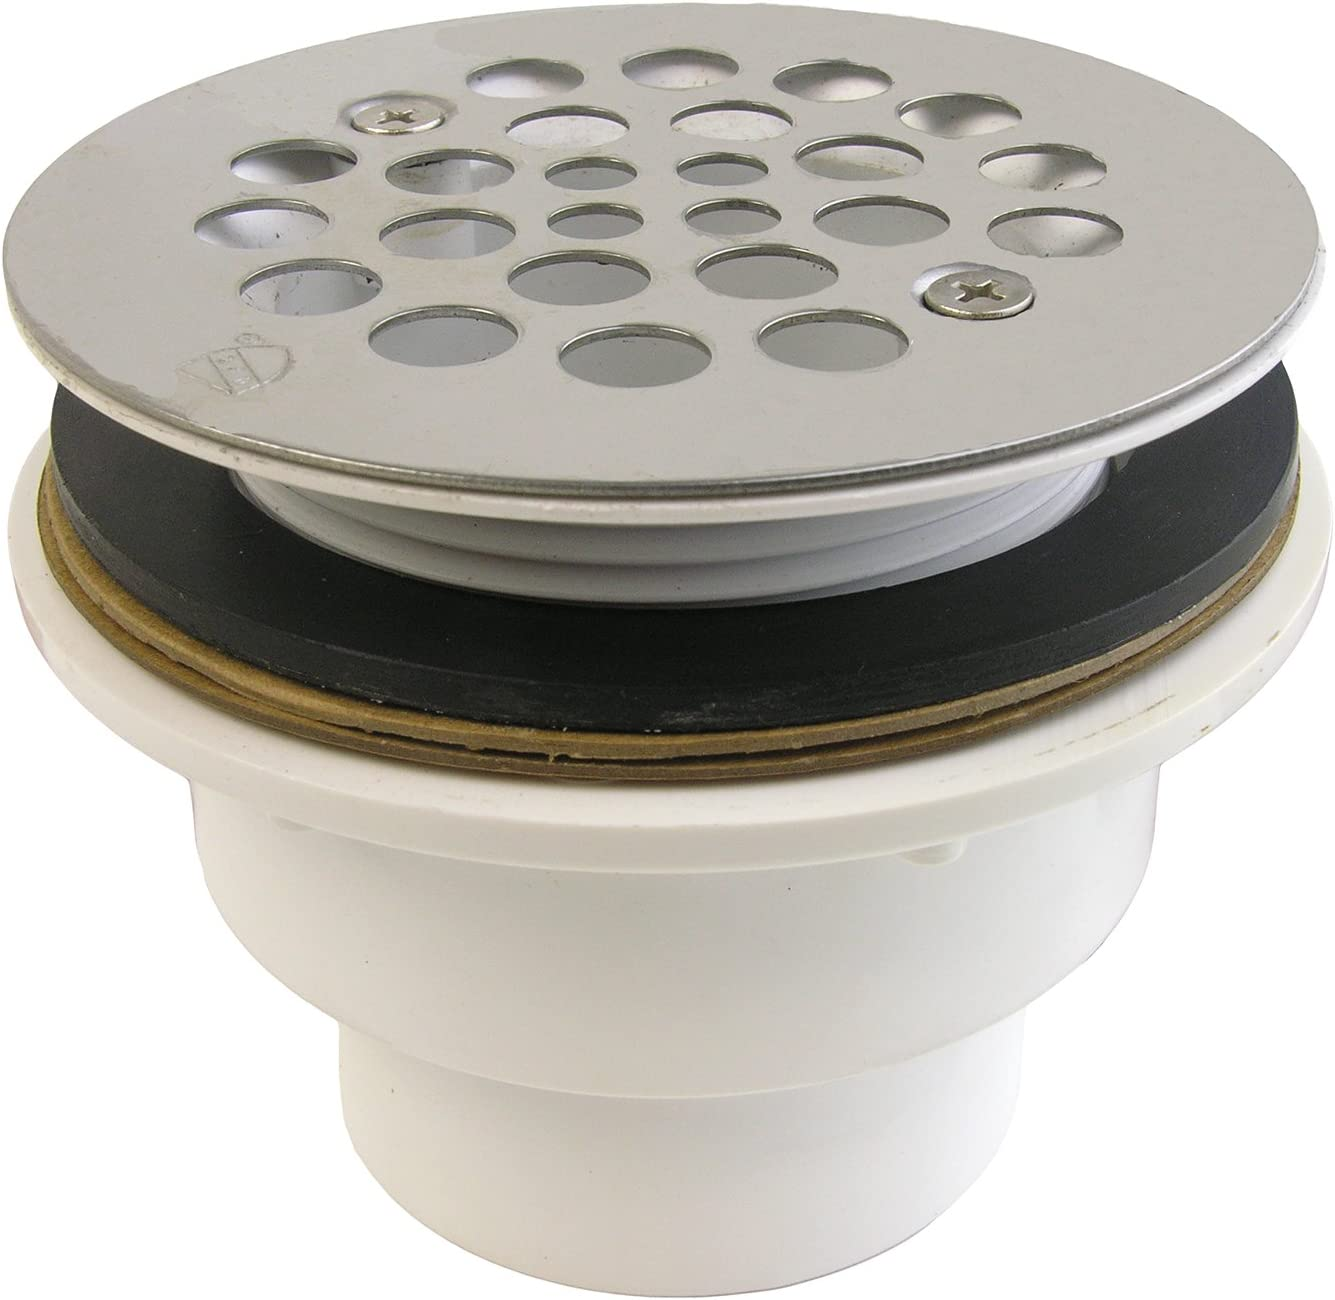 "LASCO 03-1182 Pvc Fiberglass Shower Drain, 2"",,"